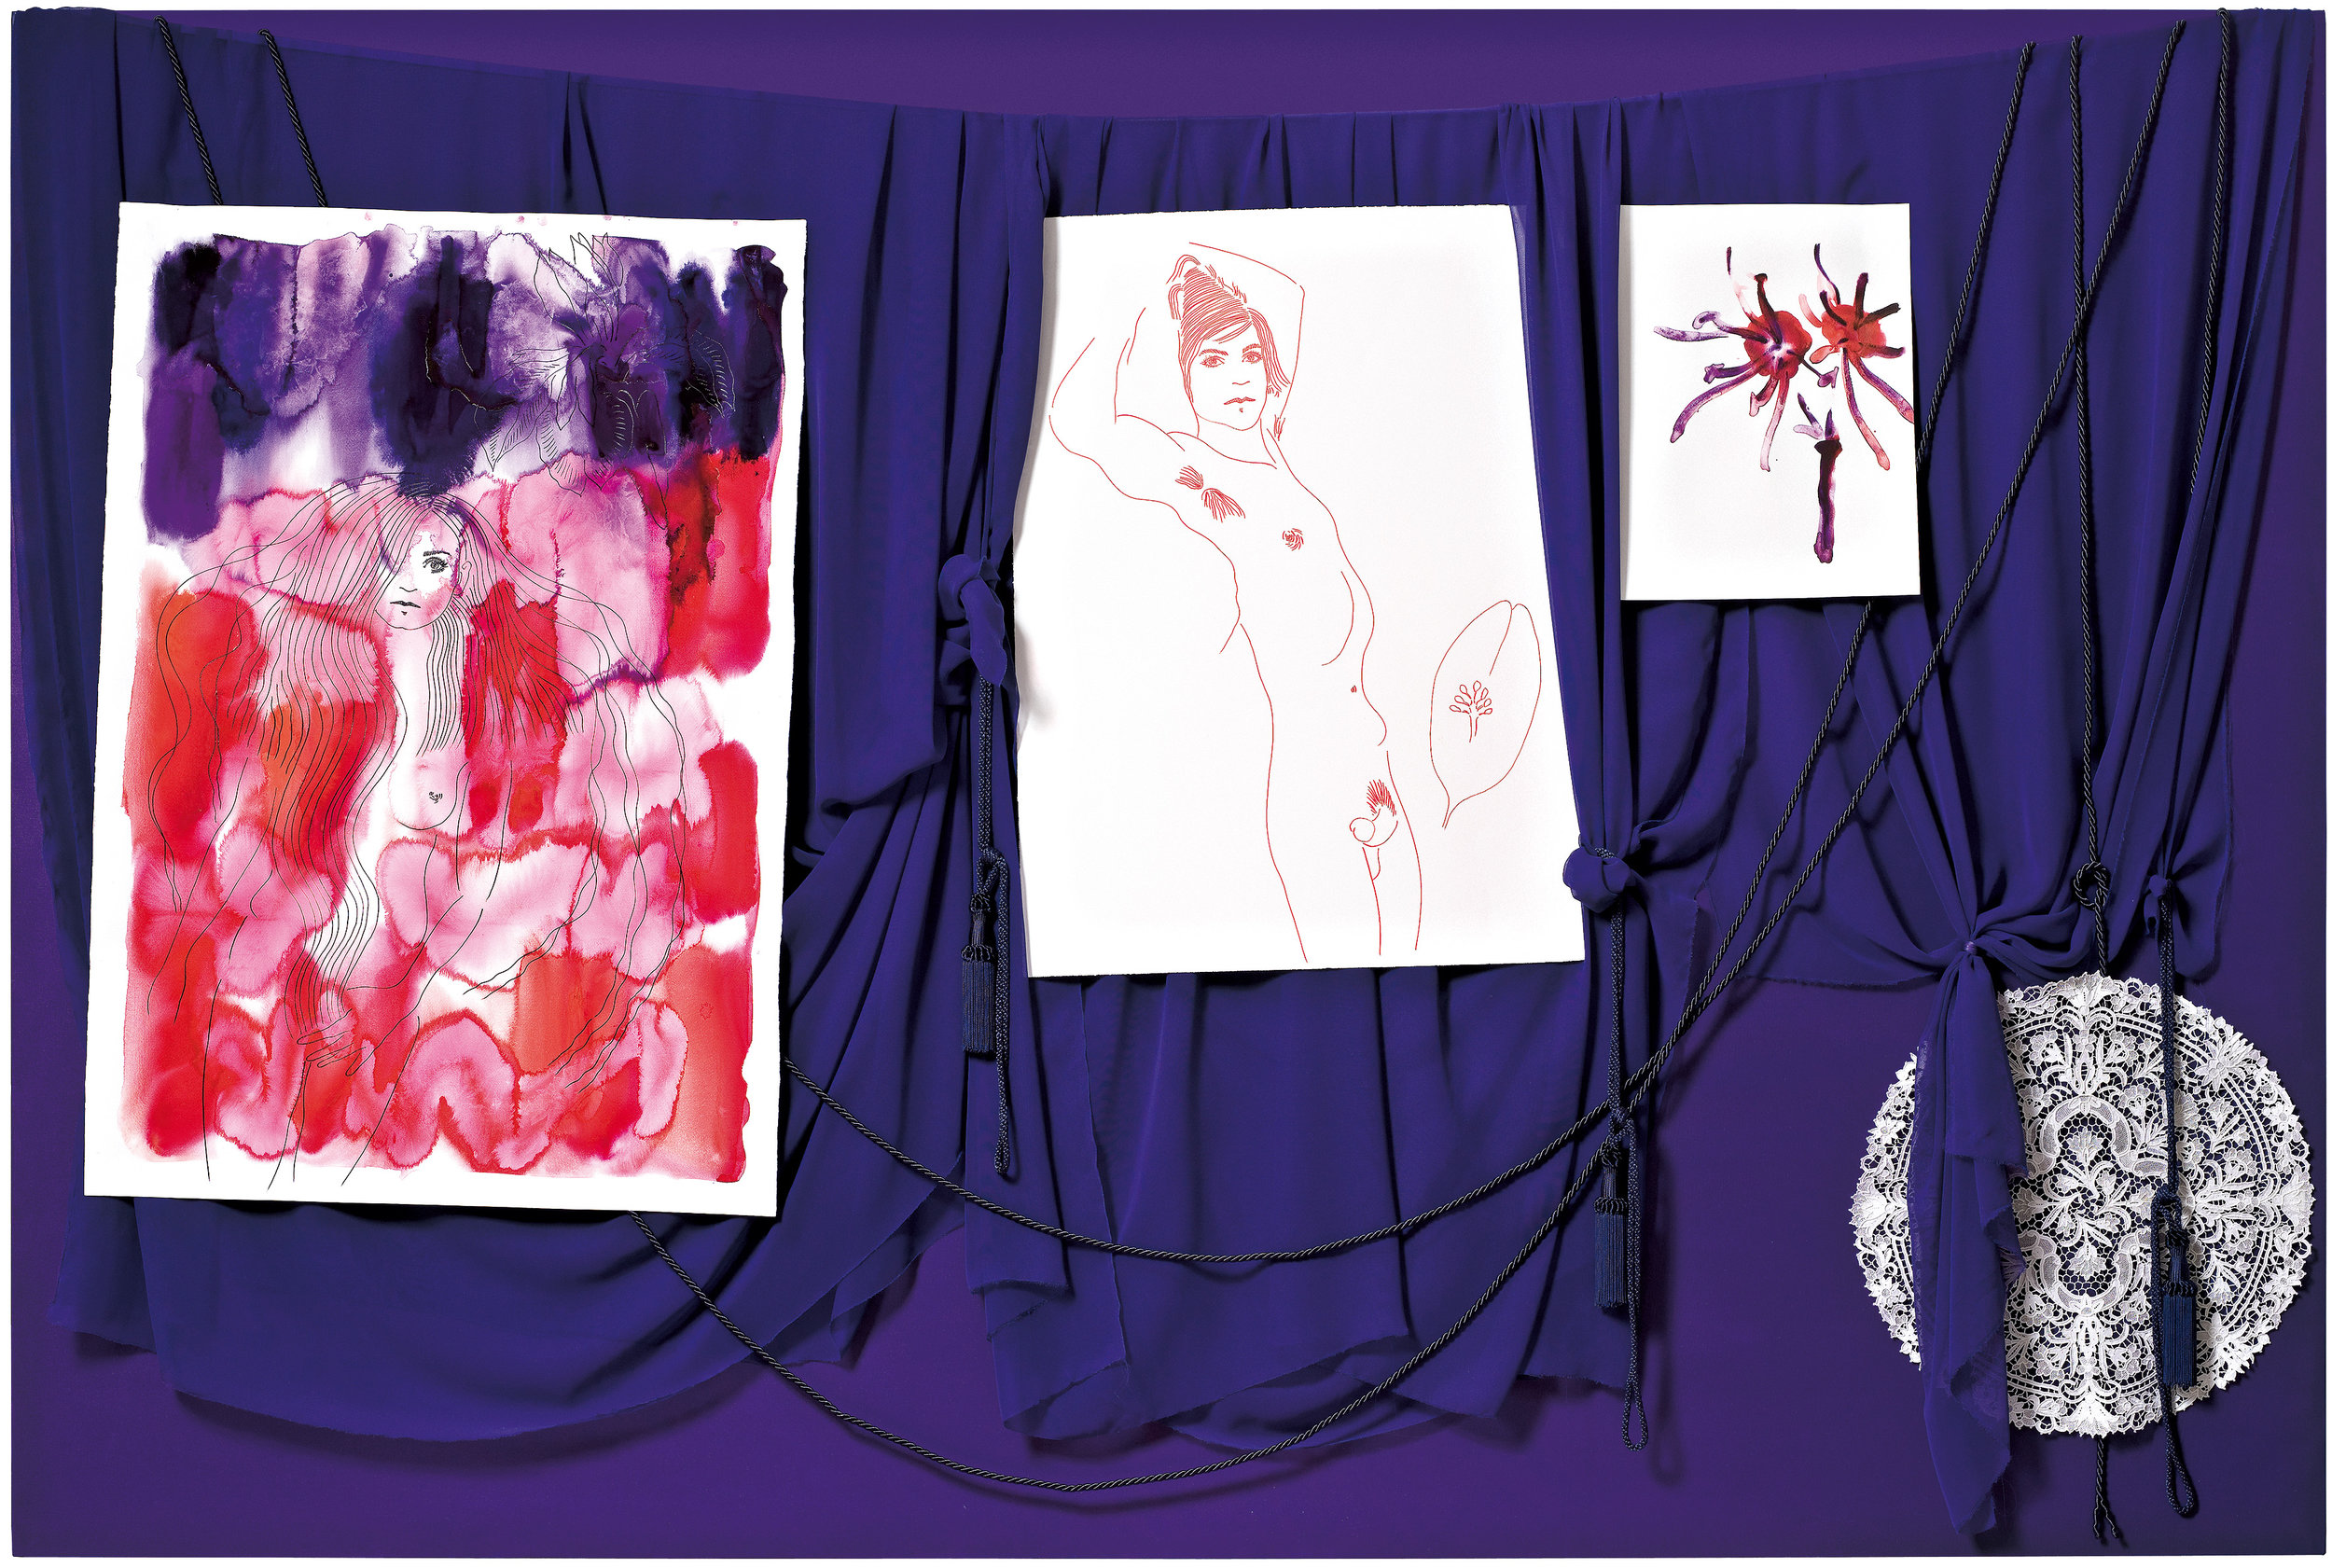 Dorte Jelstrup. With You I Wanna Go Where Peaceful Waters Flow, I, 2006. Gouache, pen and ink drawings, watercolour, chiffon, silk ribbons, wool ribbons, silk tassels, lace figure and acrylic on canvas. 156 x 234 cm. Collection The National Gallery of Denmark/Statens Museum for Kunst.